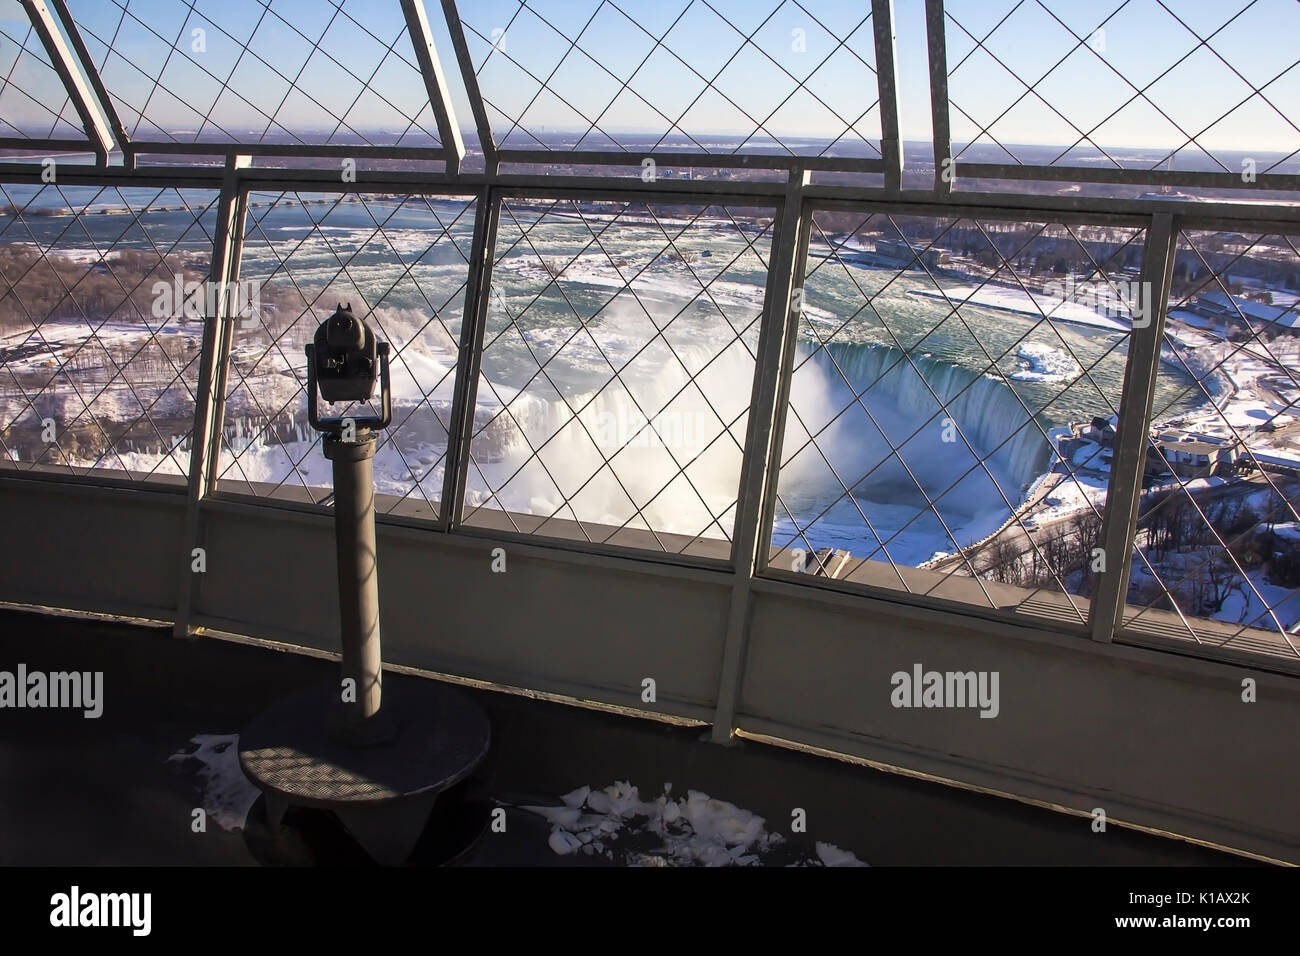 Coin Operated Telescope Binocular For Sightseeing on Skylon Tower observation deck Niagara Falls Canada - Stock Image